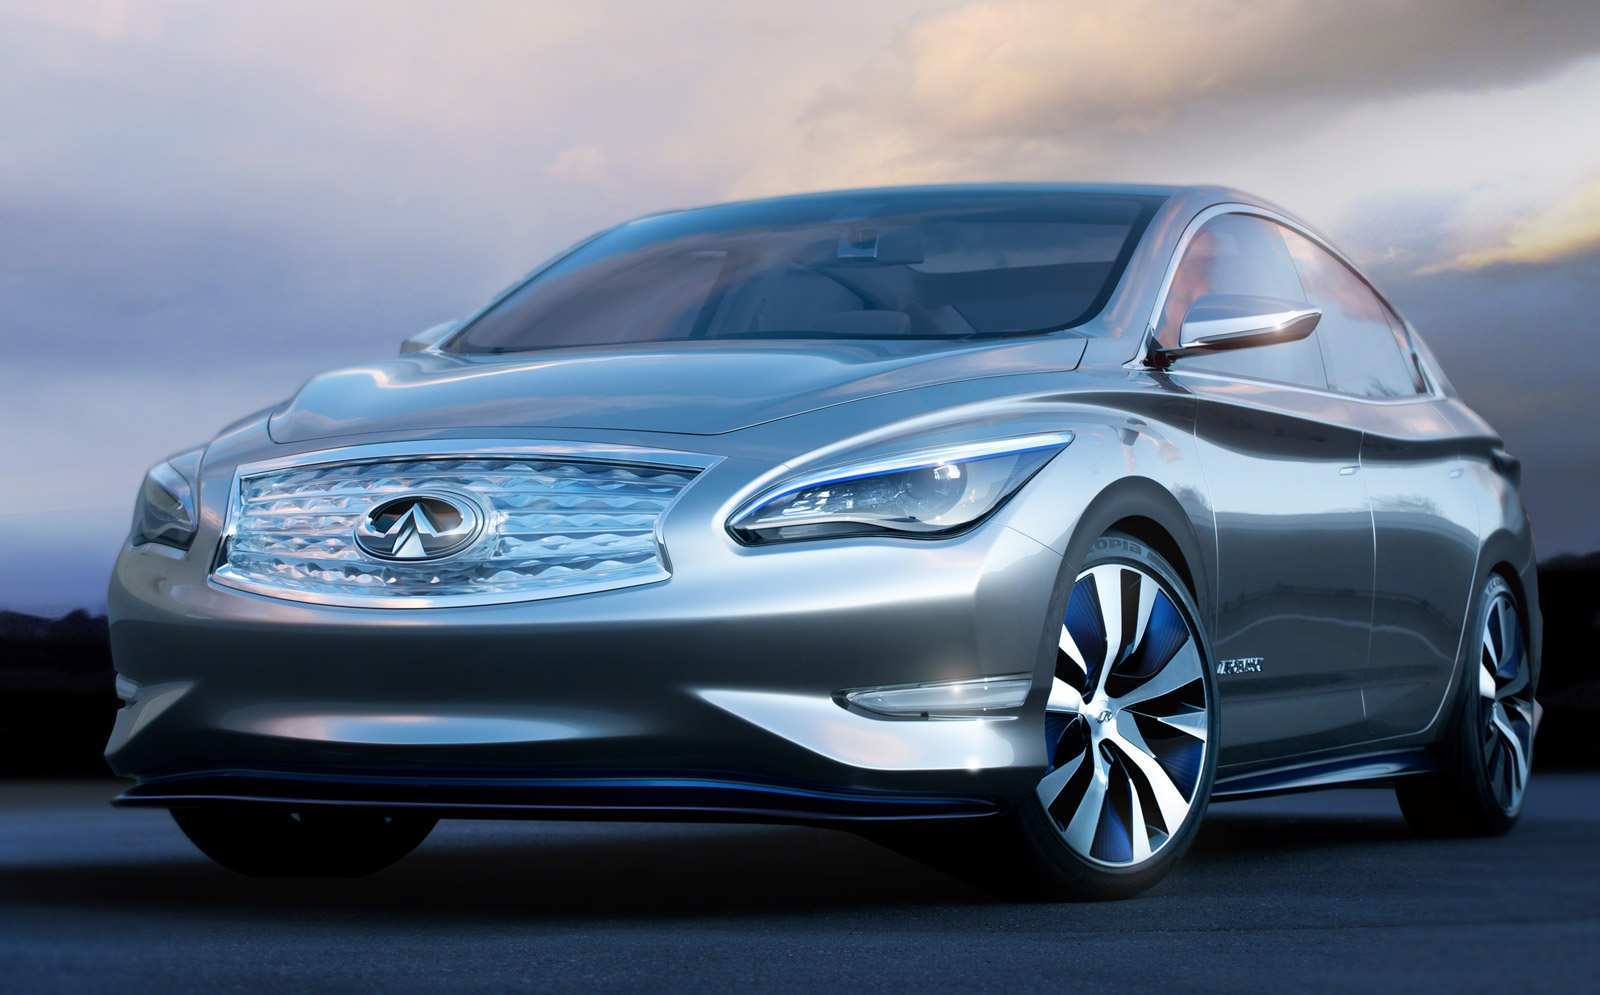 37 New 2020 Infiniti Electric Release Date And Concept